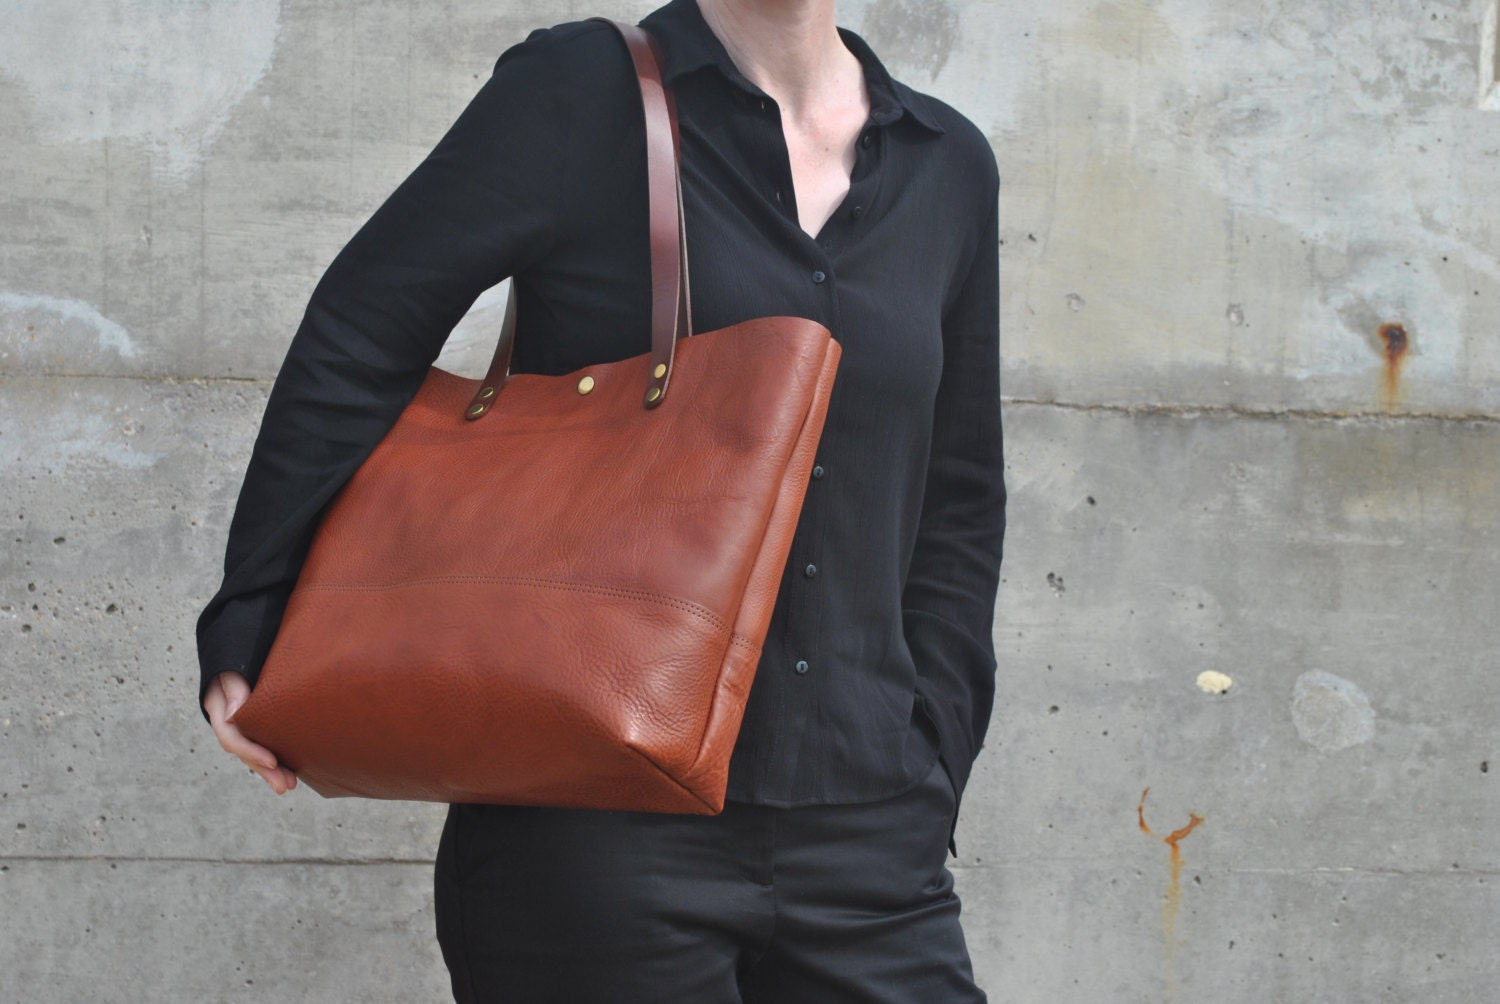 Italian Leather Shoulder Bag Italian Leather Laptop Bag